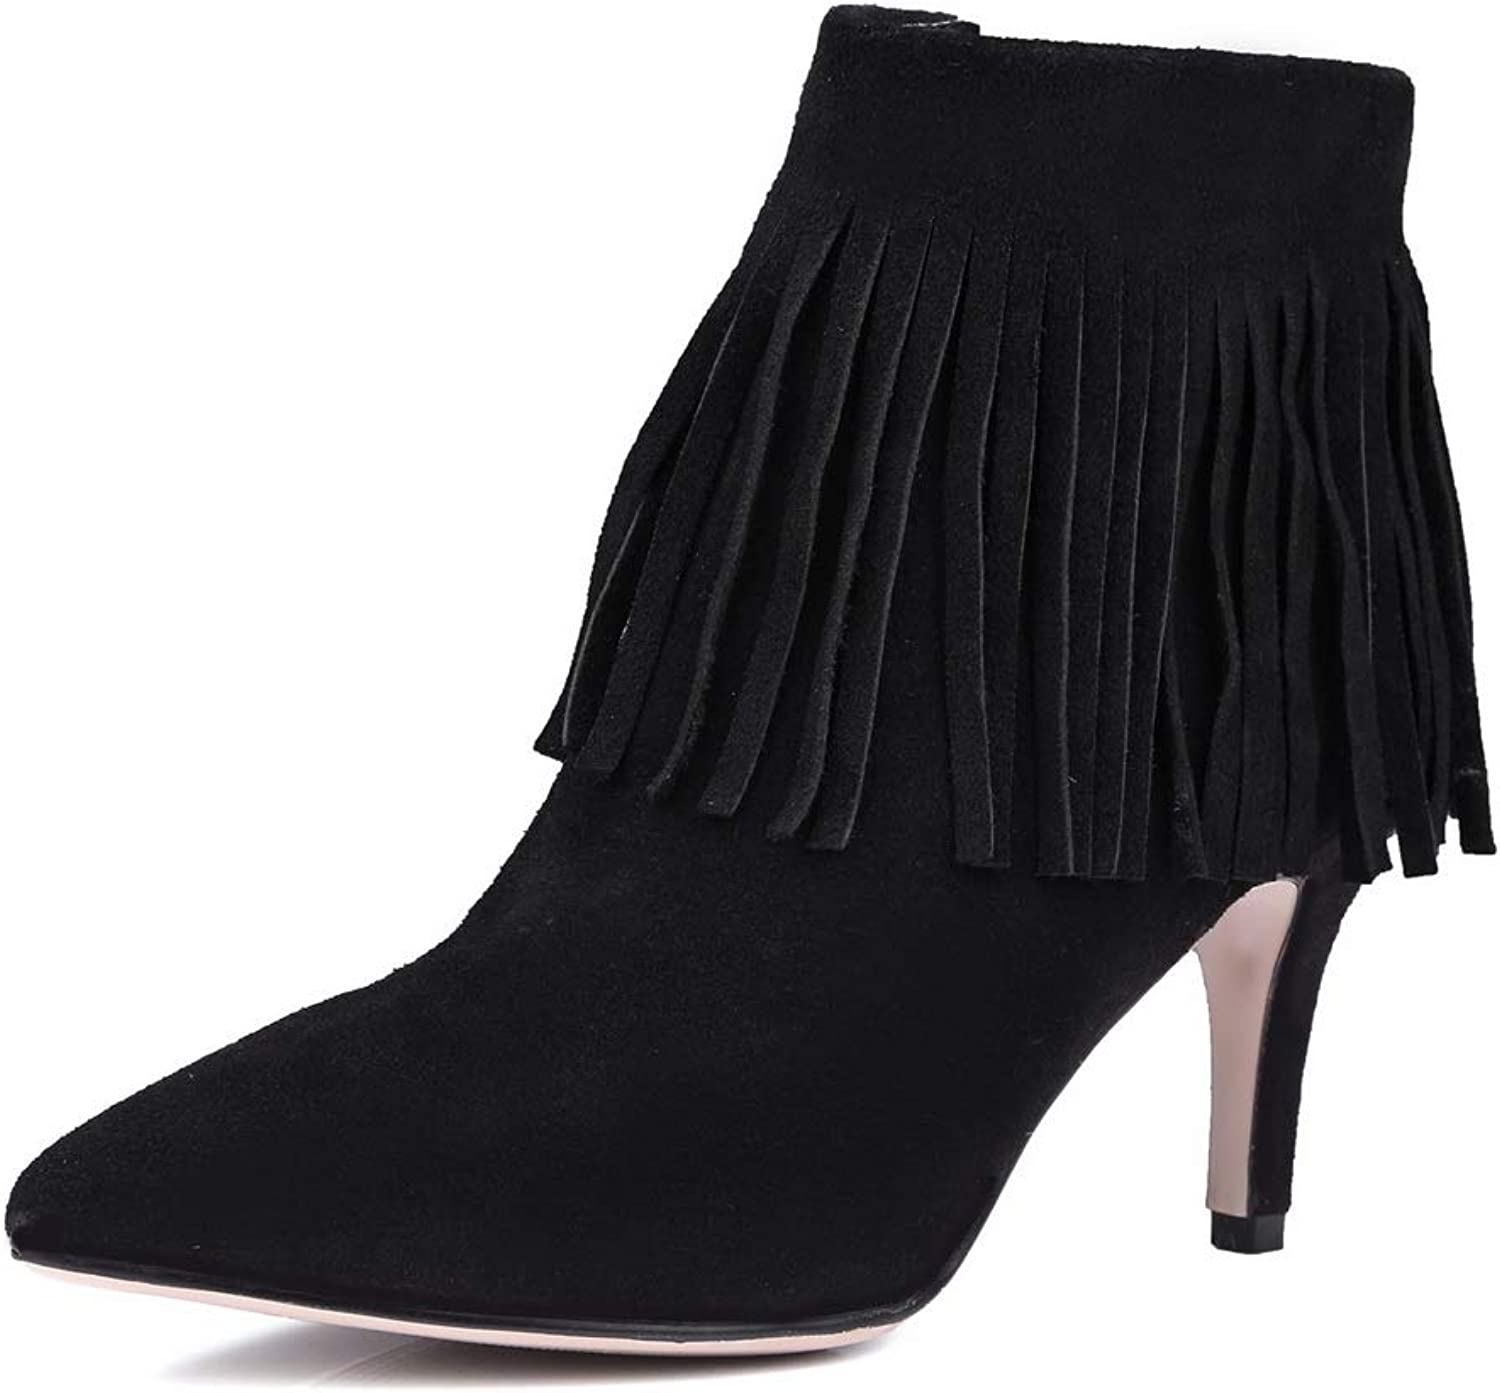 AN Womens Spikes Stilettos Pointed-Toe Tassels Imitated Suede Boots DKU02157